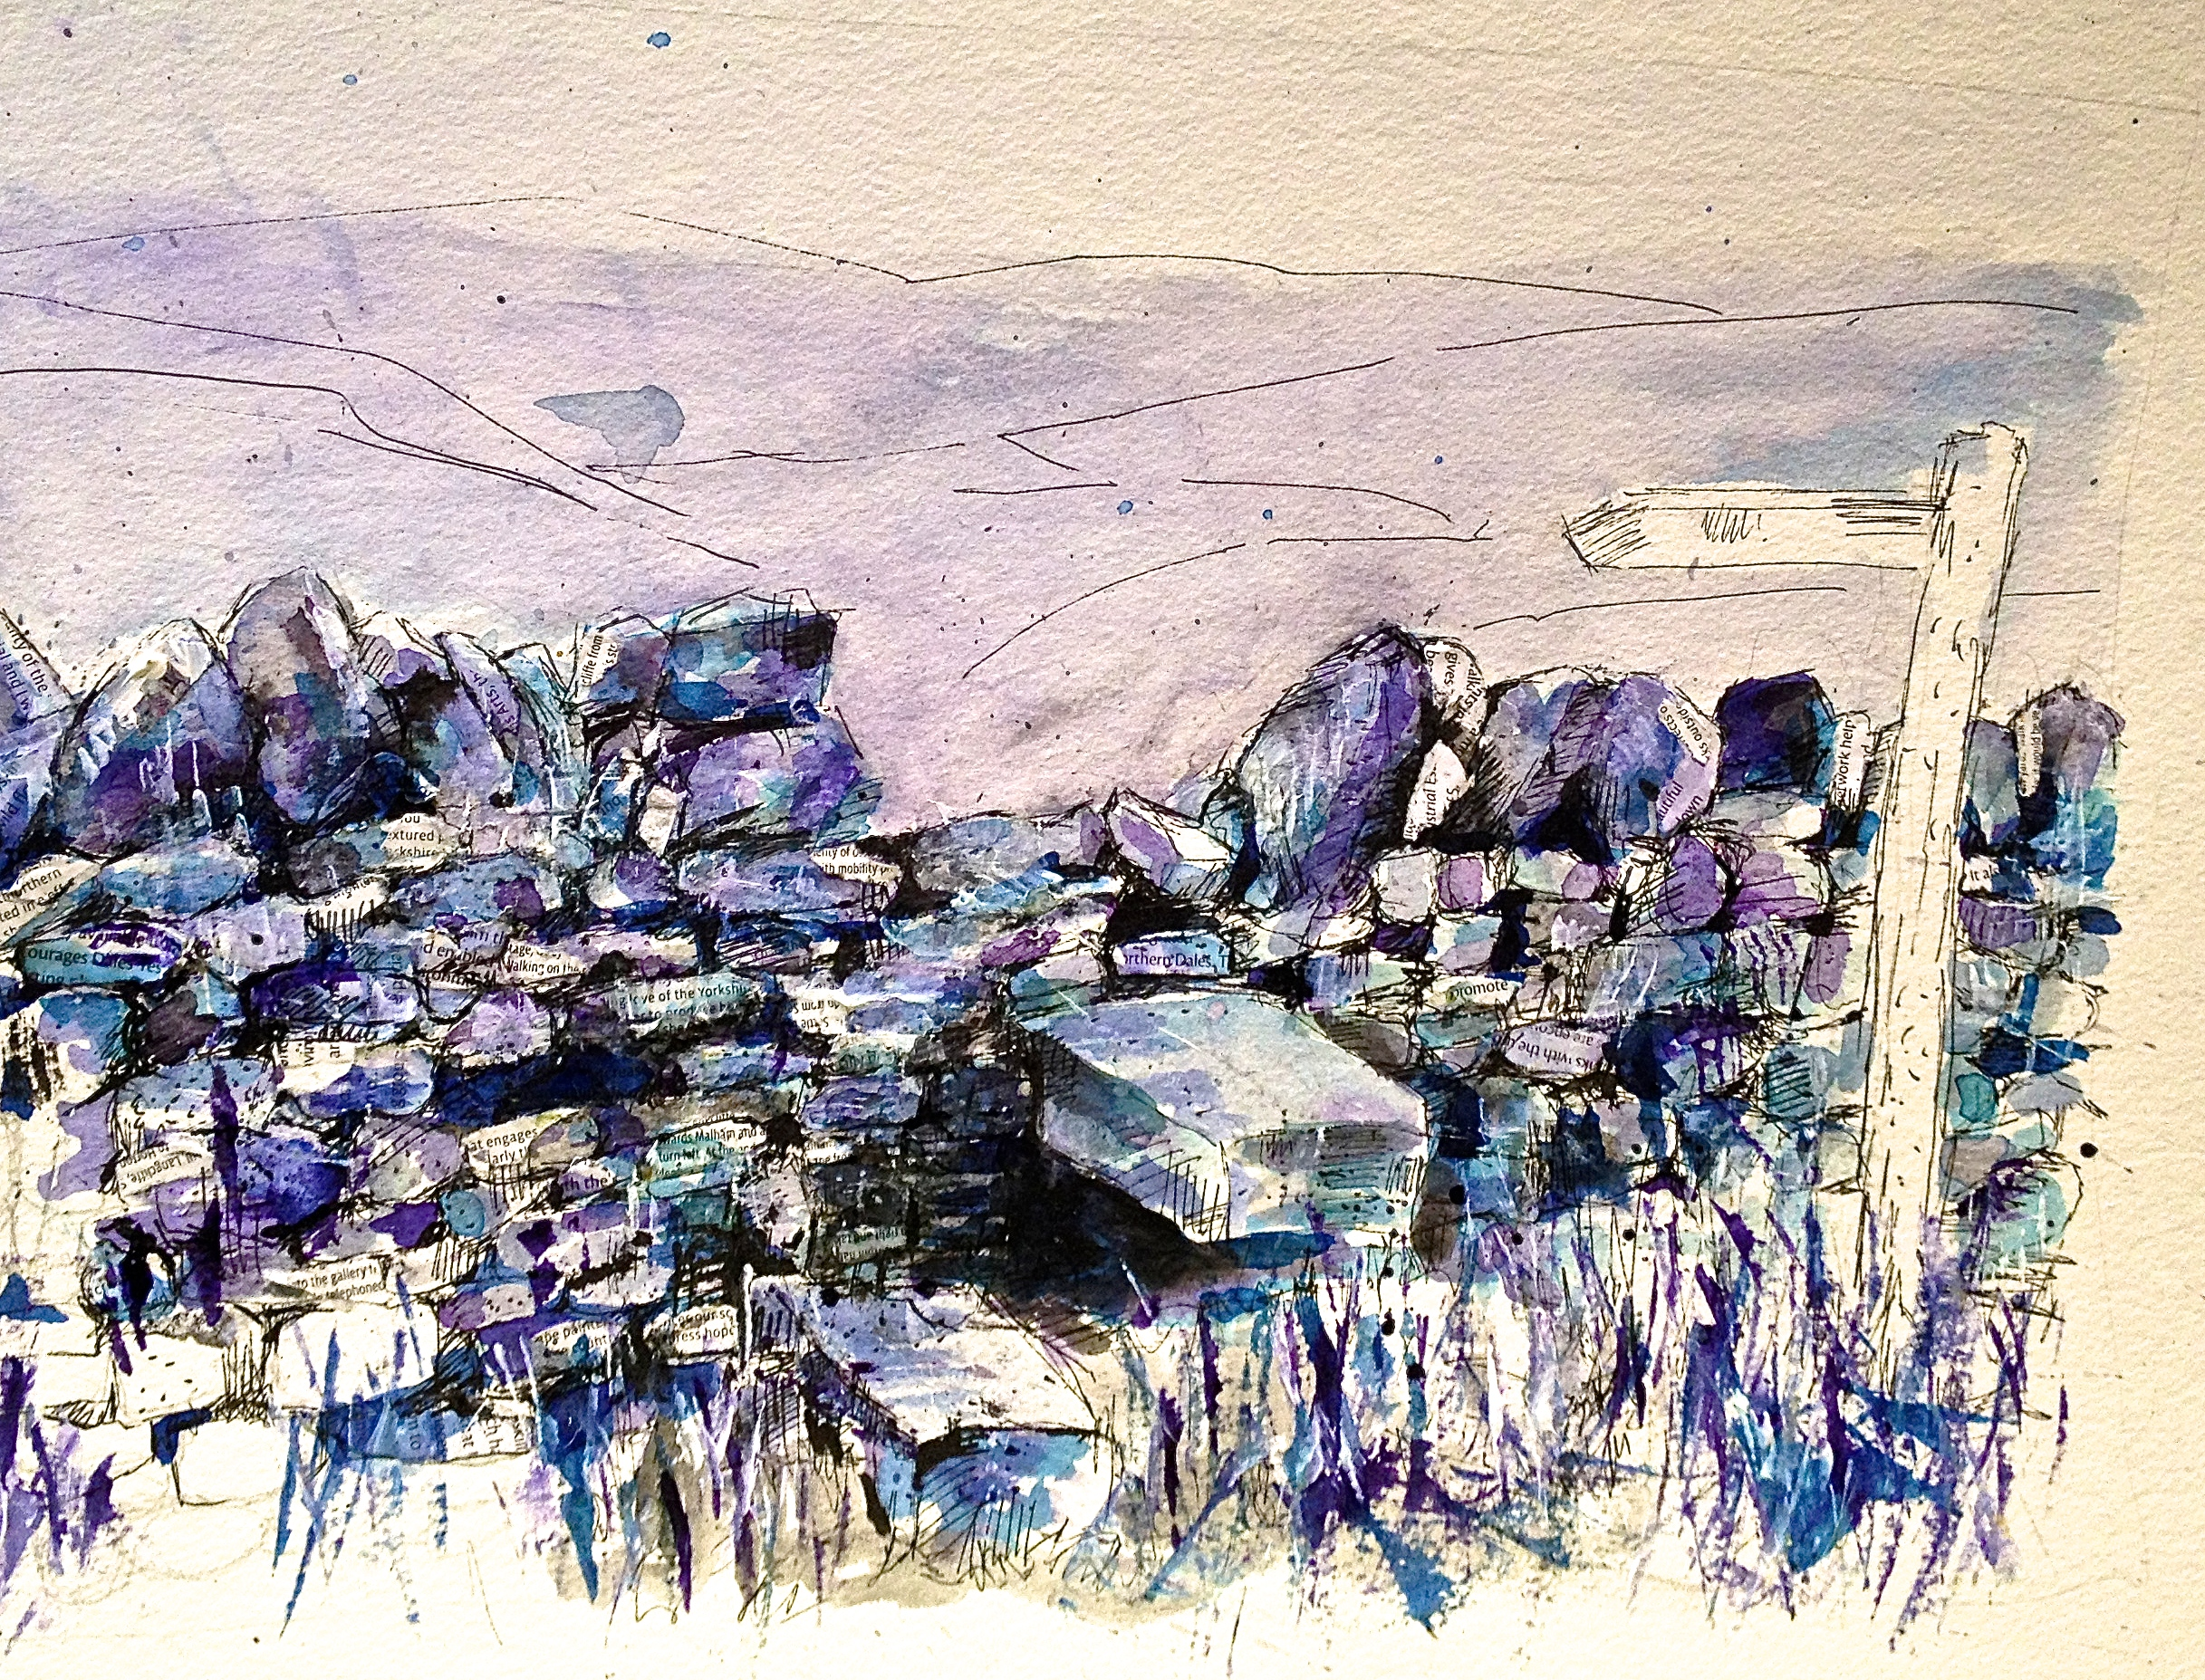 Work in progress - Wall in Purple and Blue